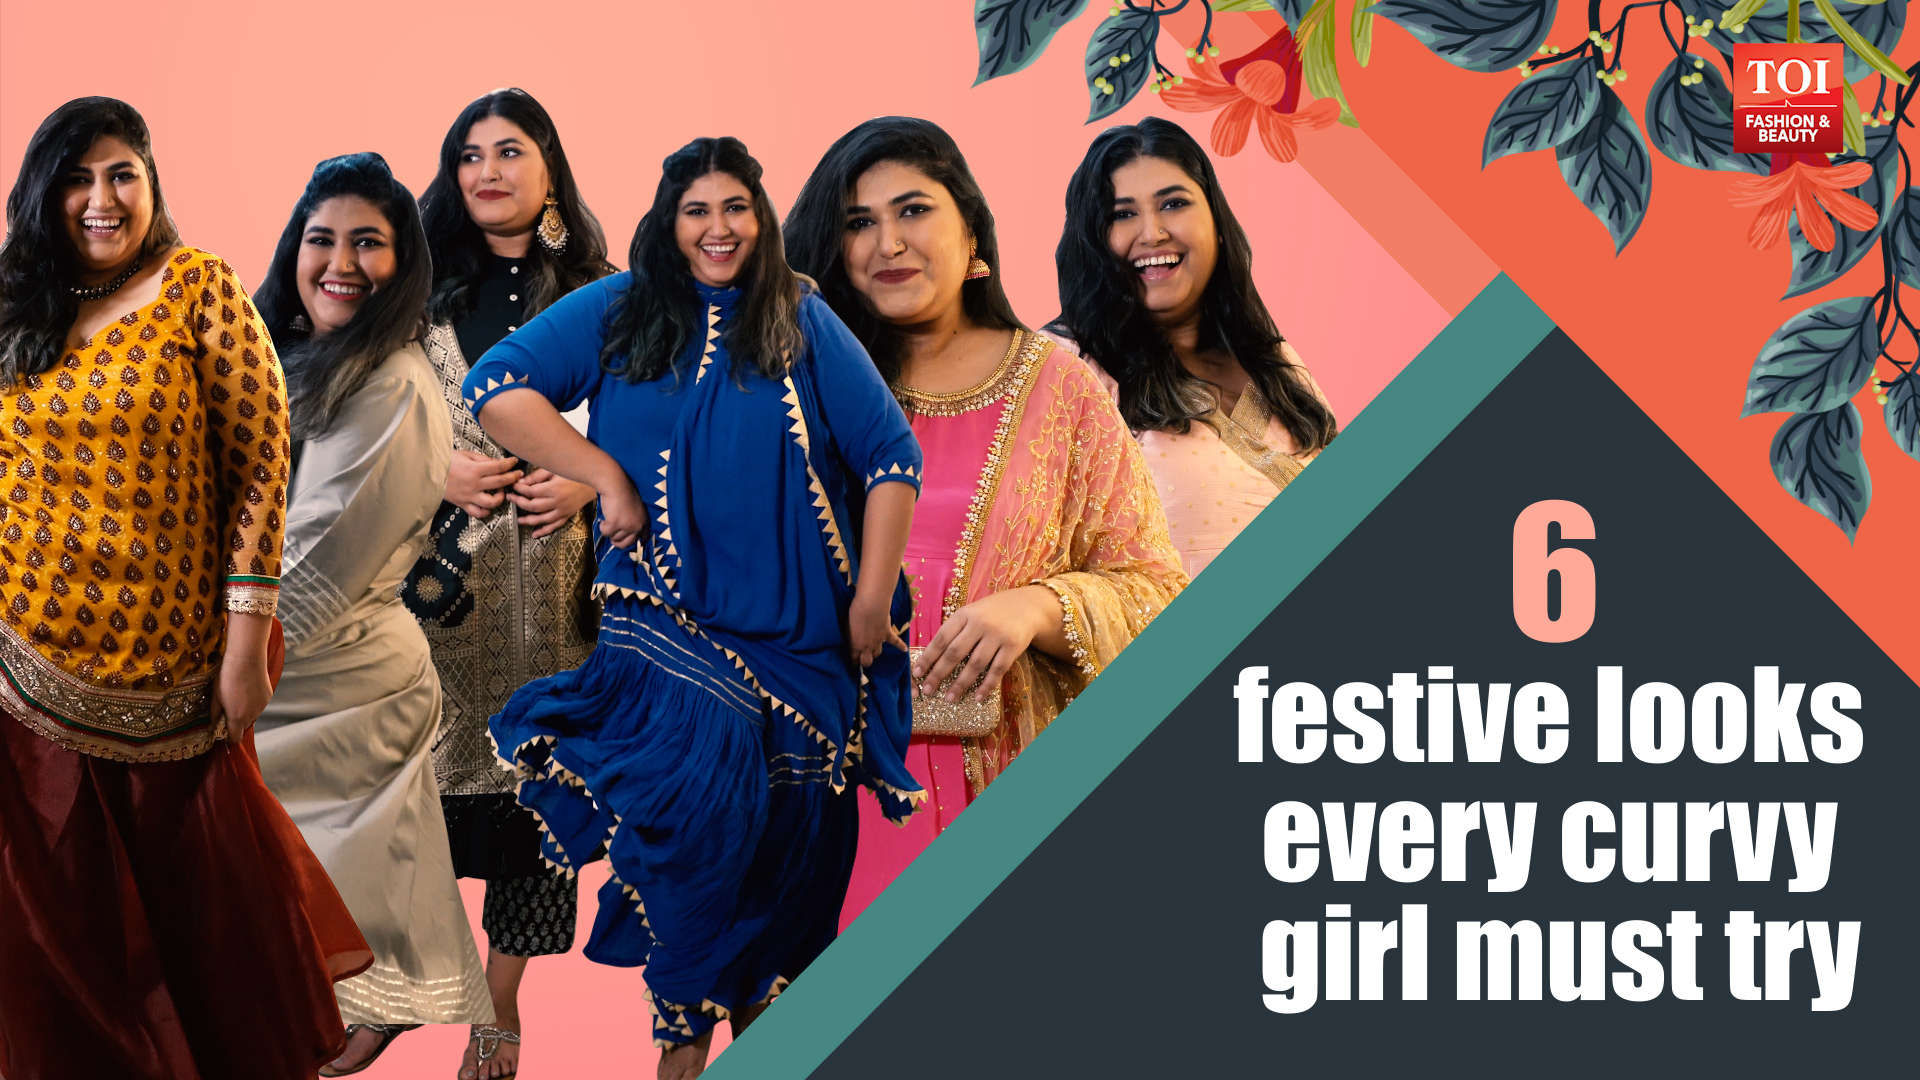 6-festive-looks-every-curvy-girl-must-try